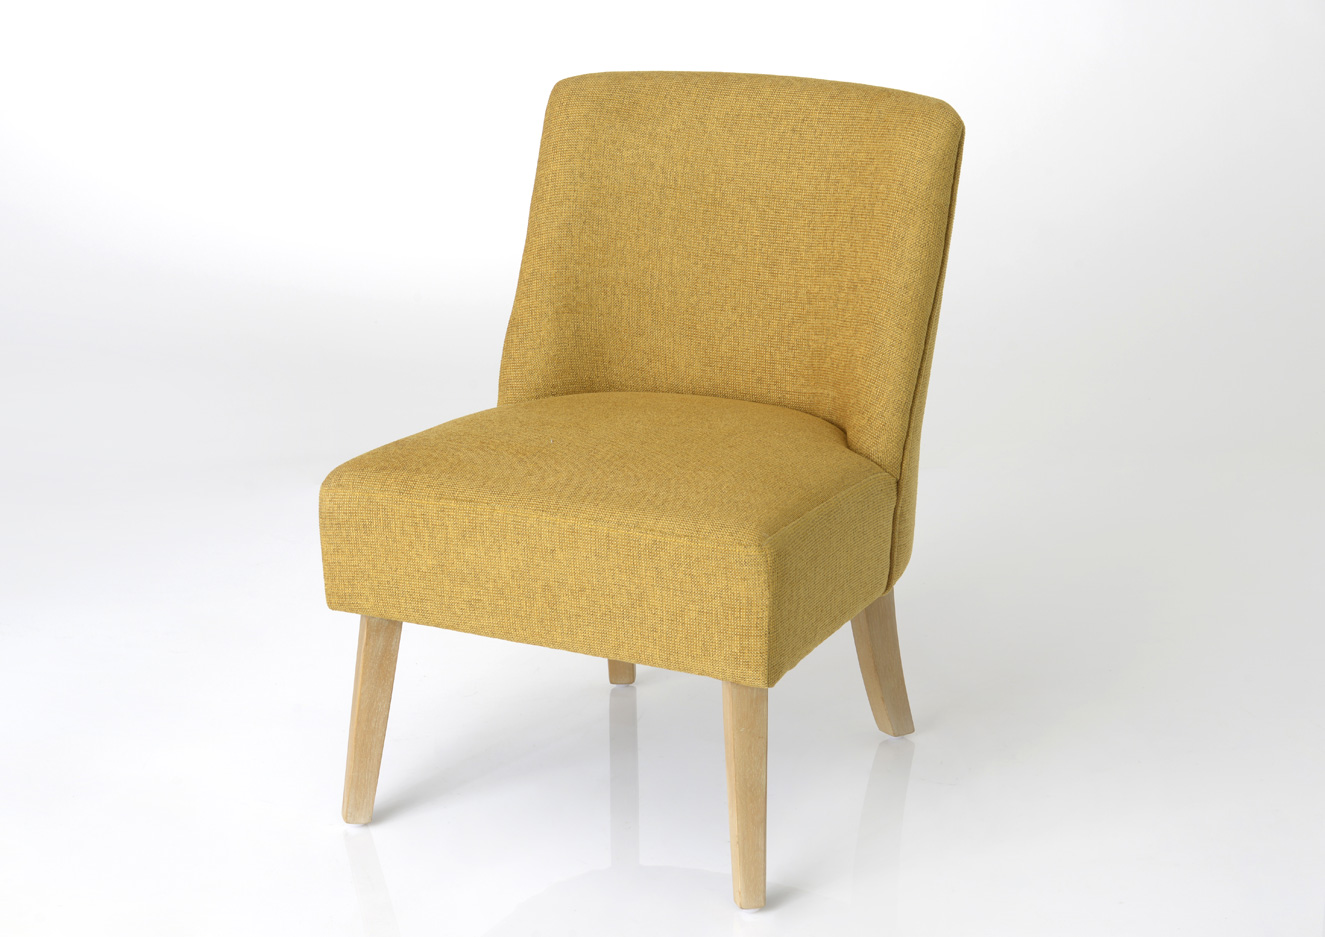 Fauteuil Relax Jaune Moutarde fauteuil moutarde dag